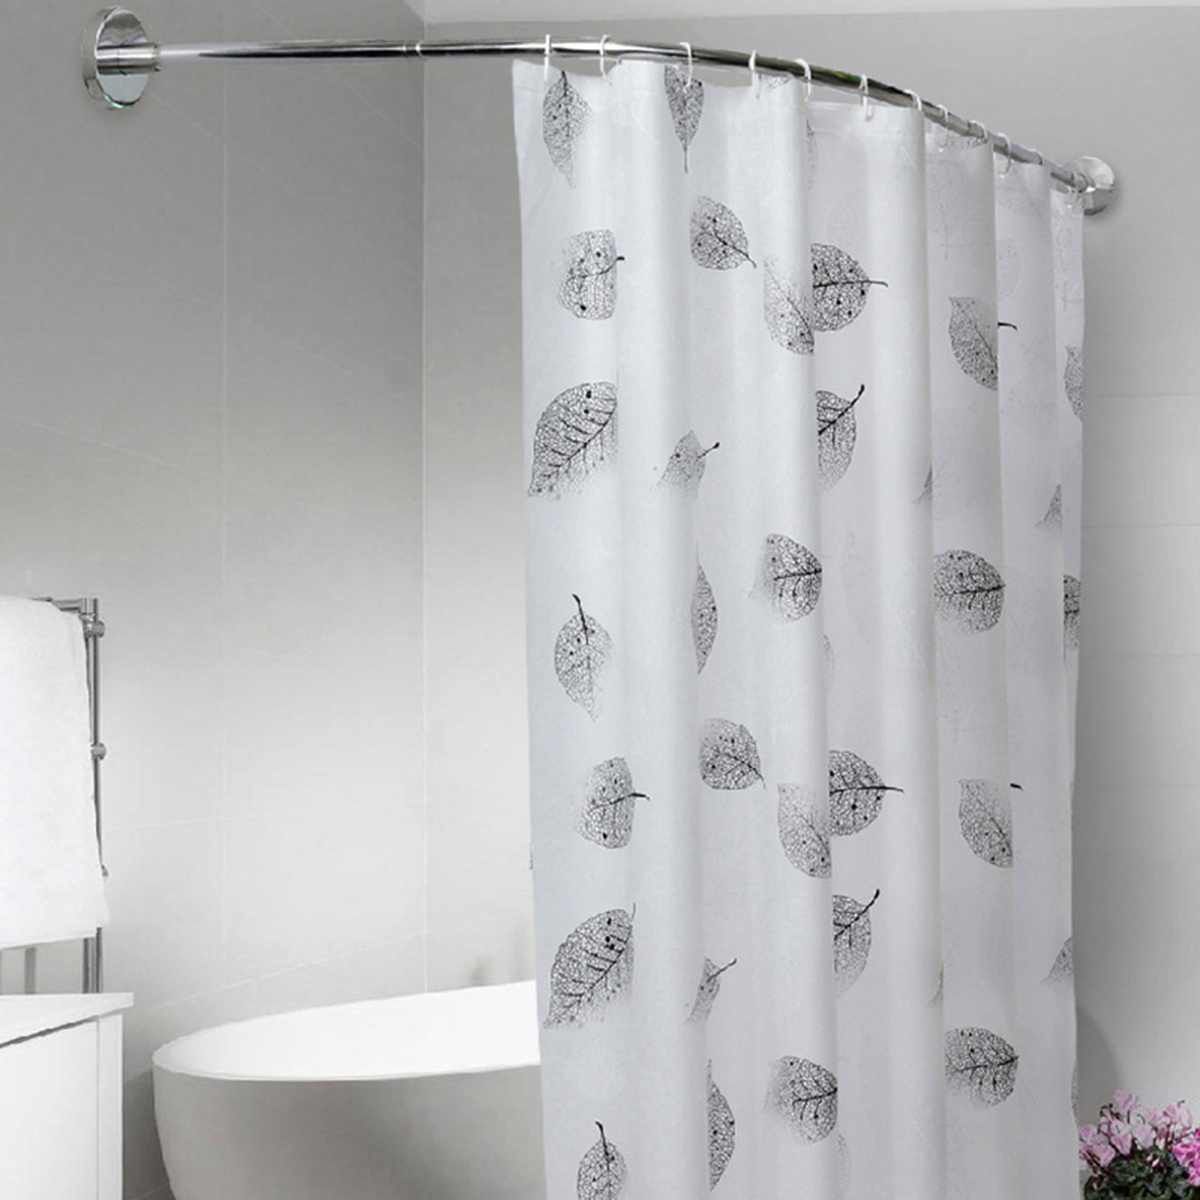 extendable corner curved shower curtain rod pole adjustable 40 64 inch no punching rail rod shower curtain and glue are not included